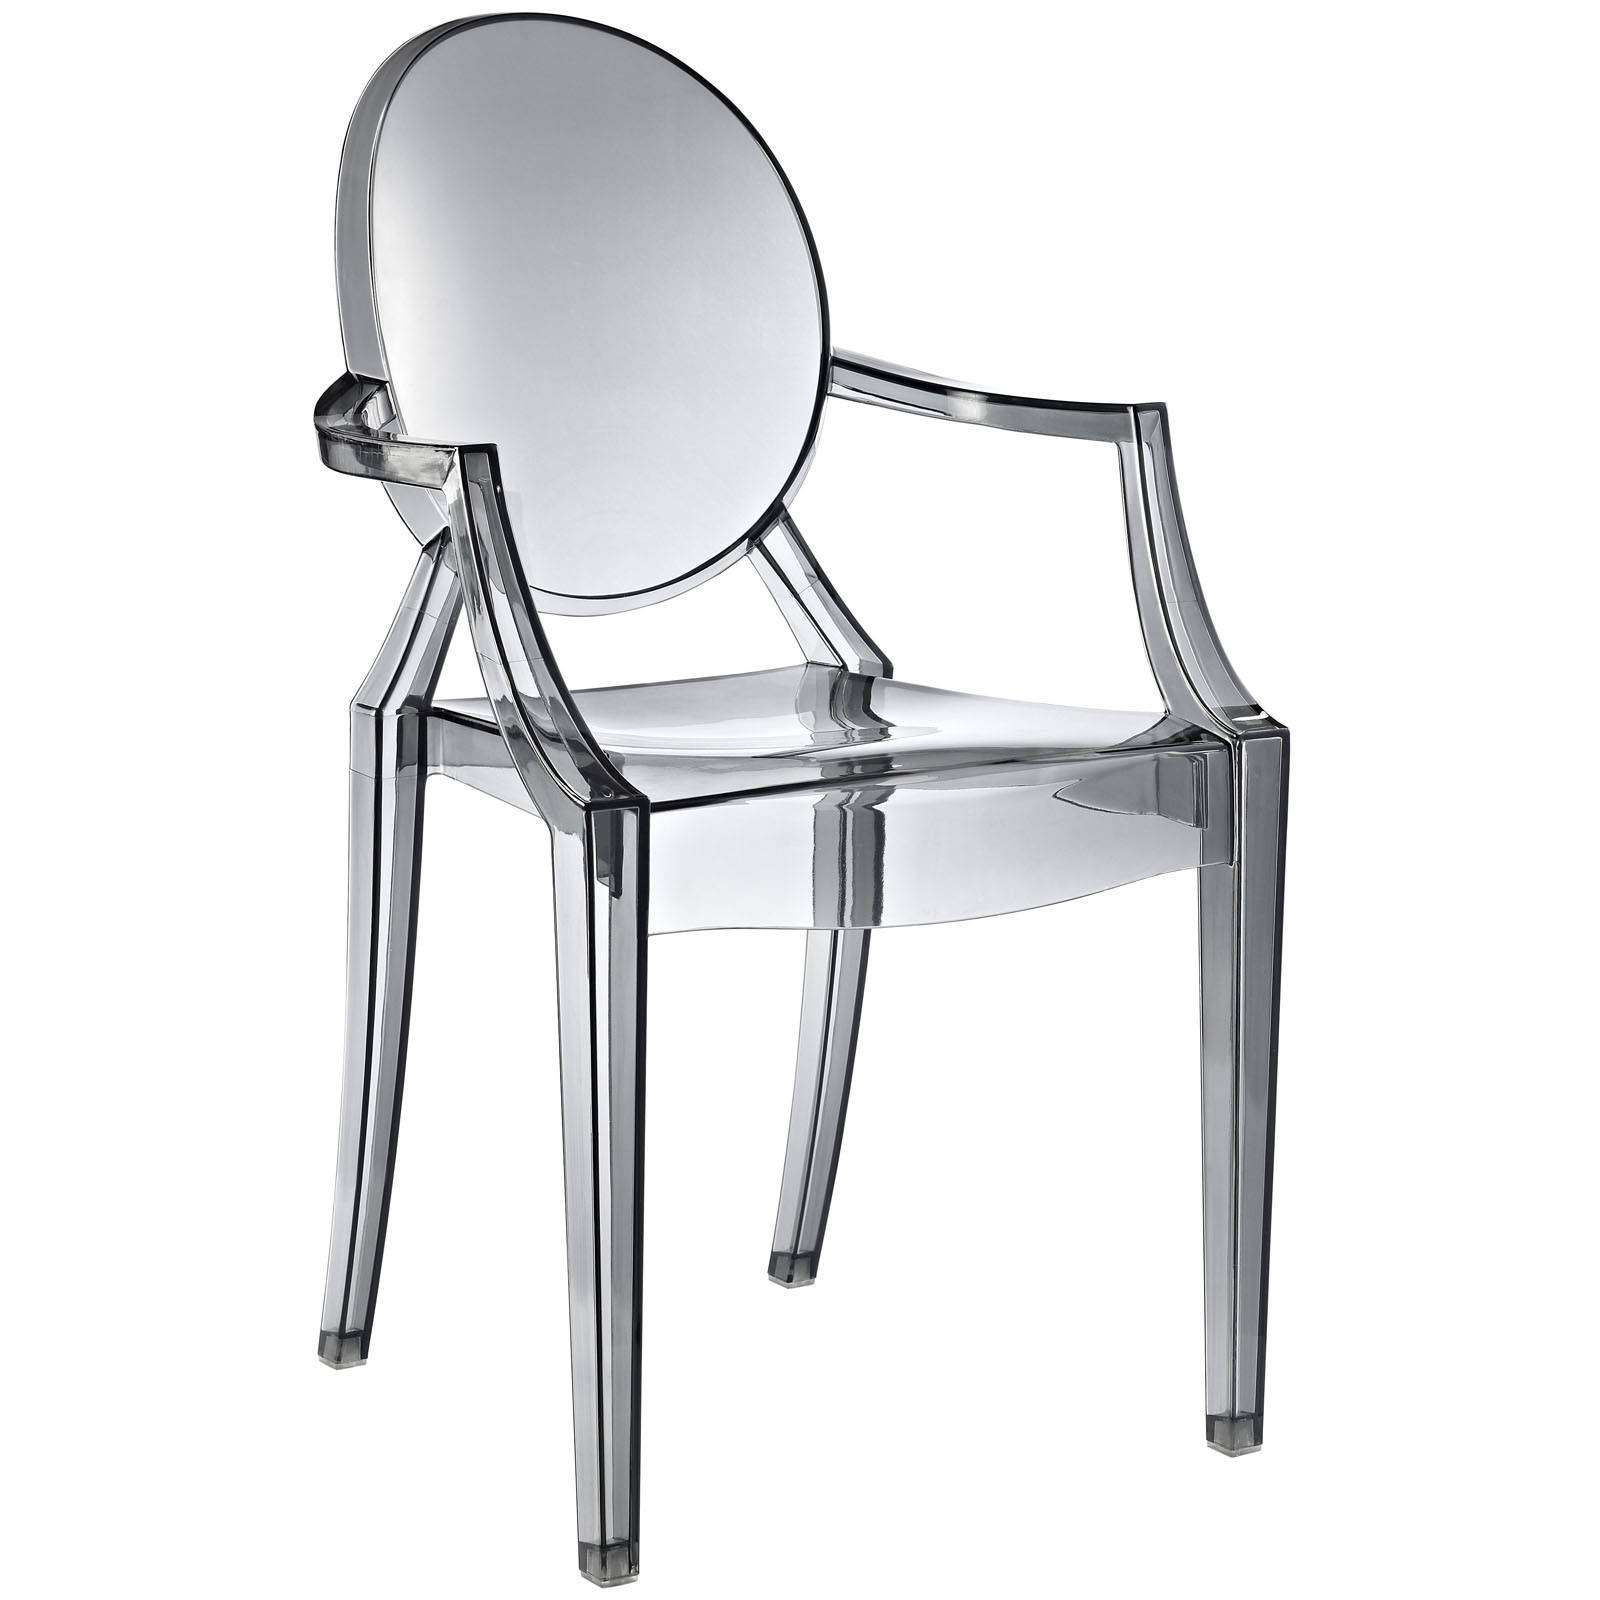 philippe starck style louis ghost arm chair. Black Bedroom Furniture Sets. Home Design Ideas